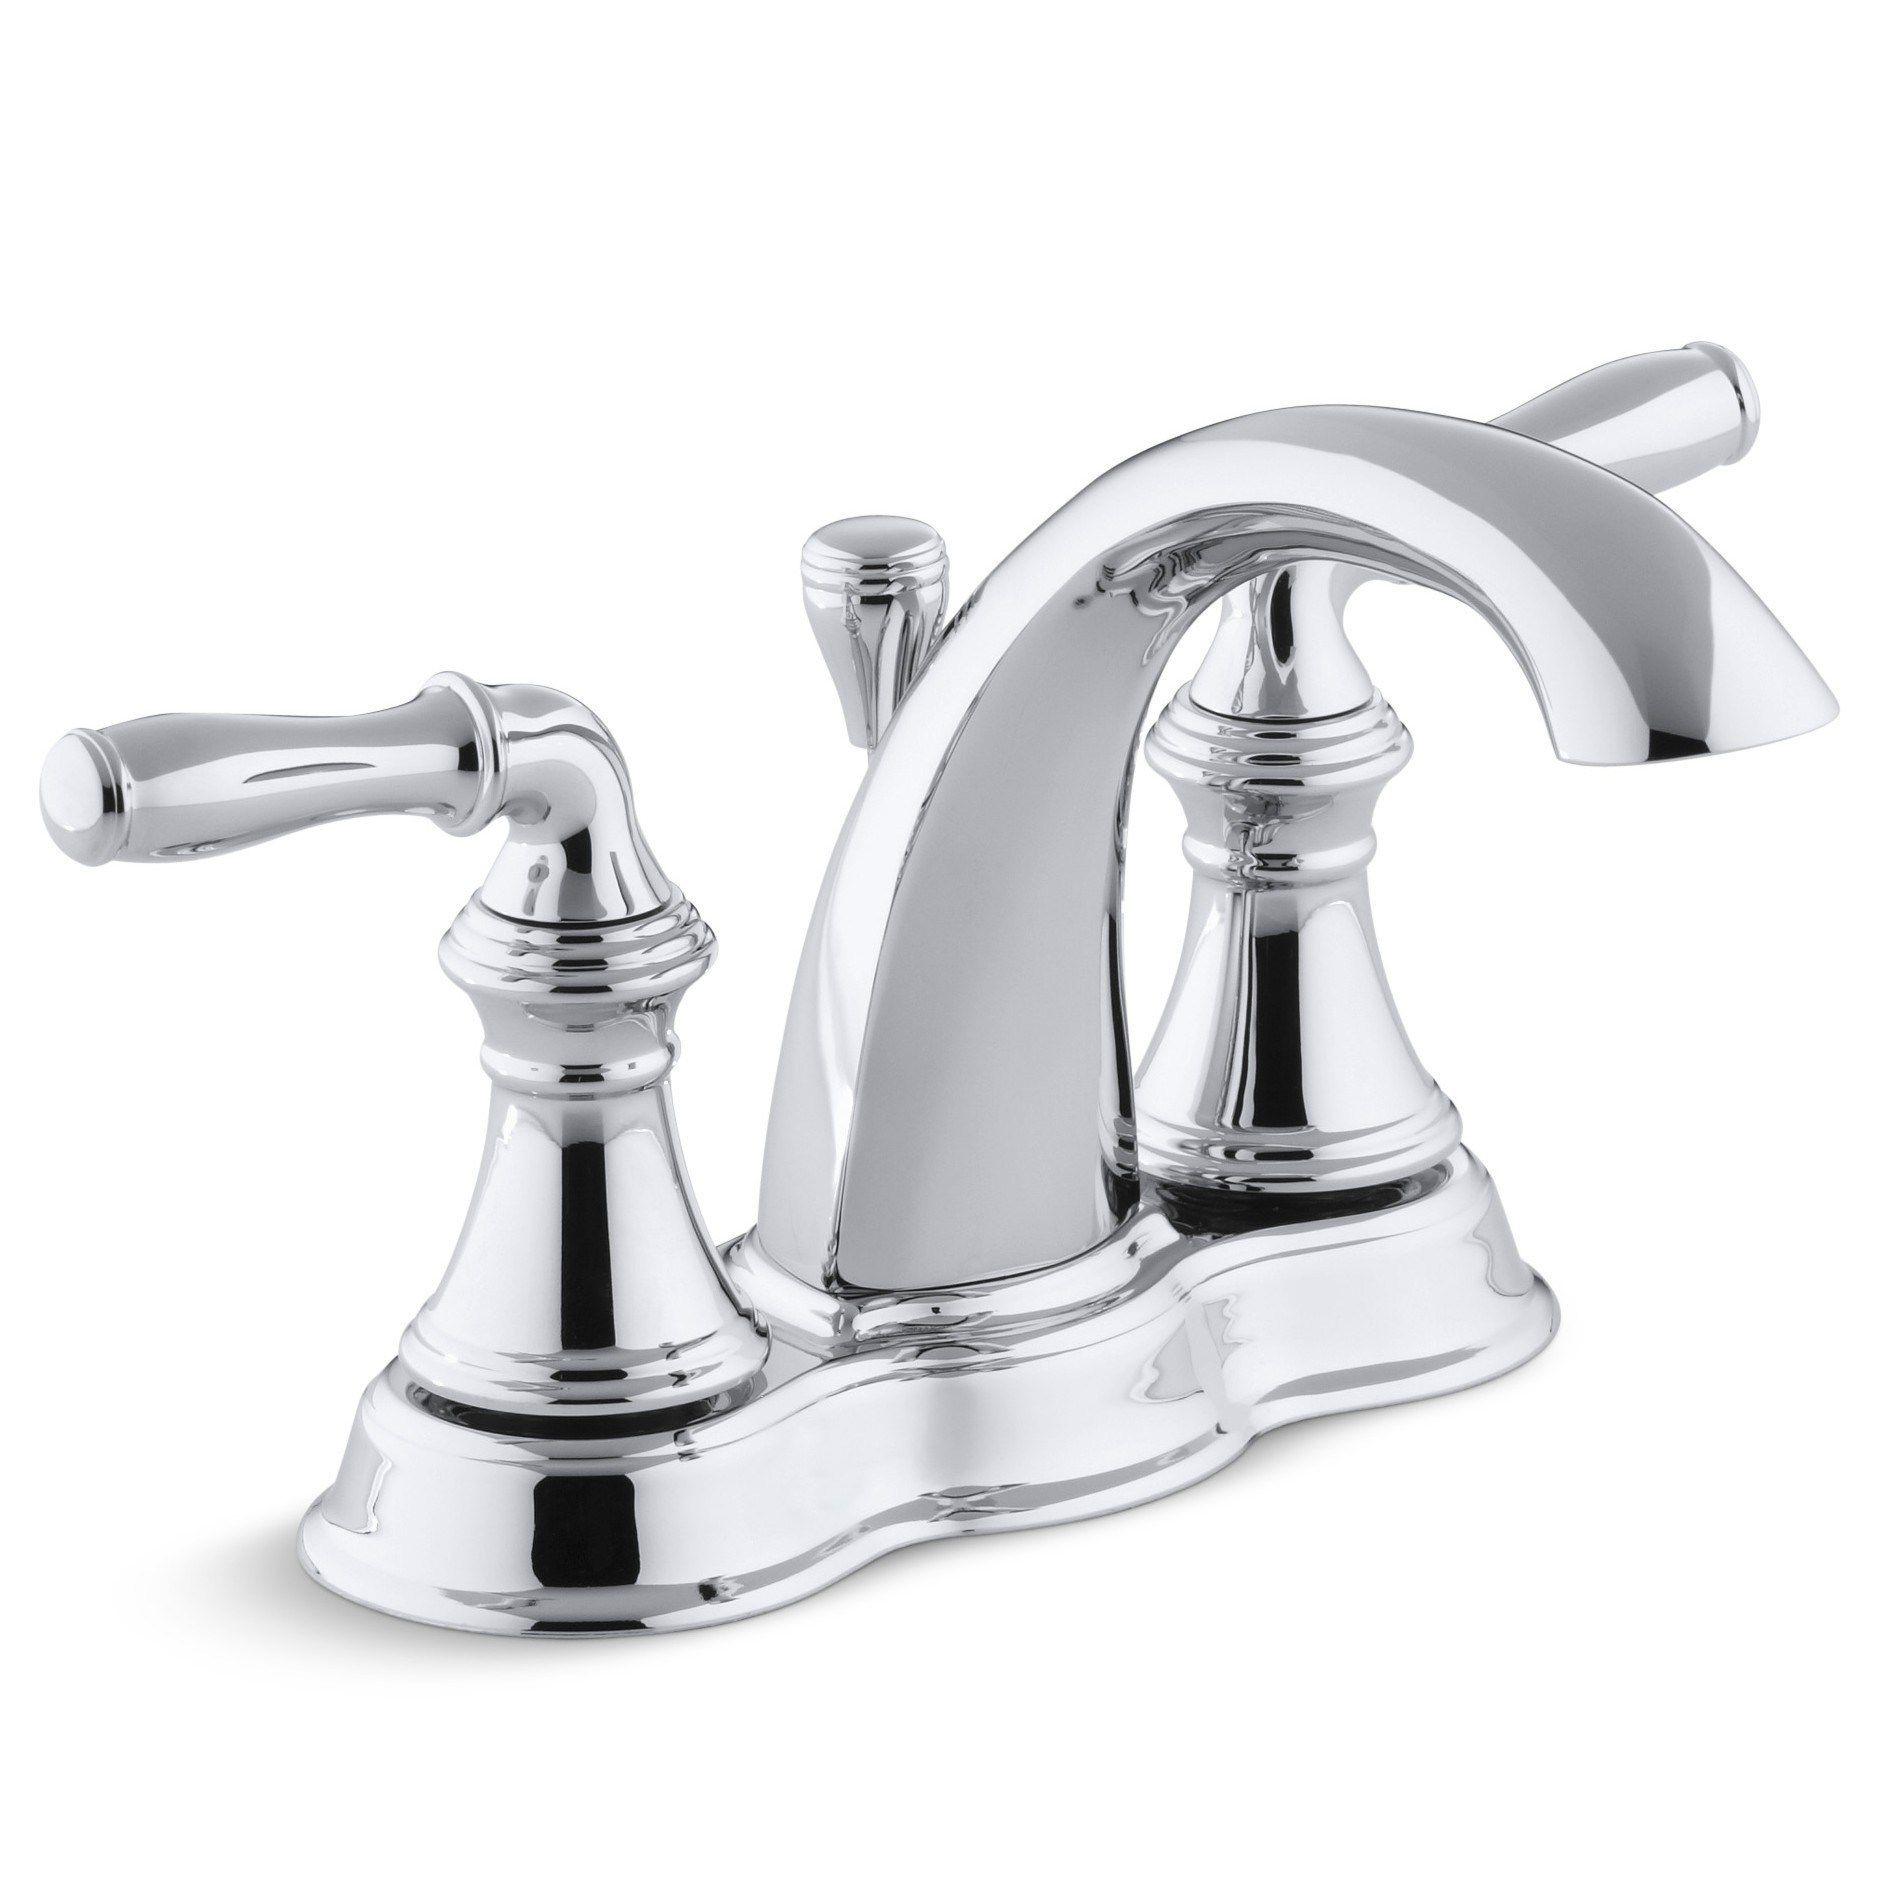 Fresh American Standard Bathroom Faucets Reviews | Pinterest ...